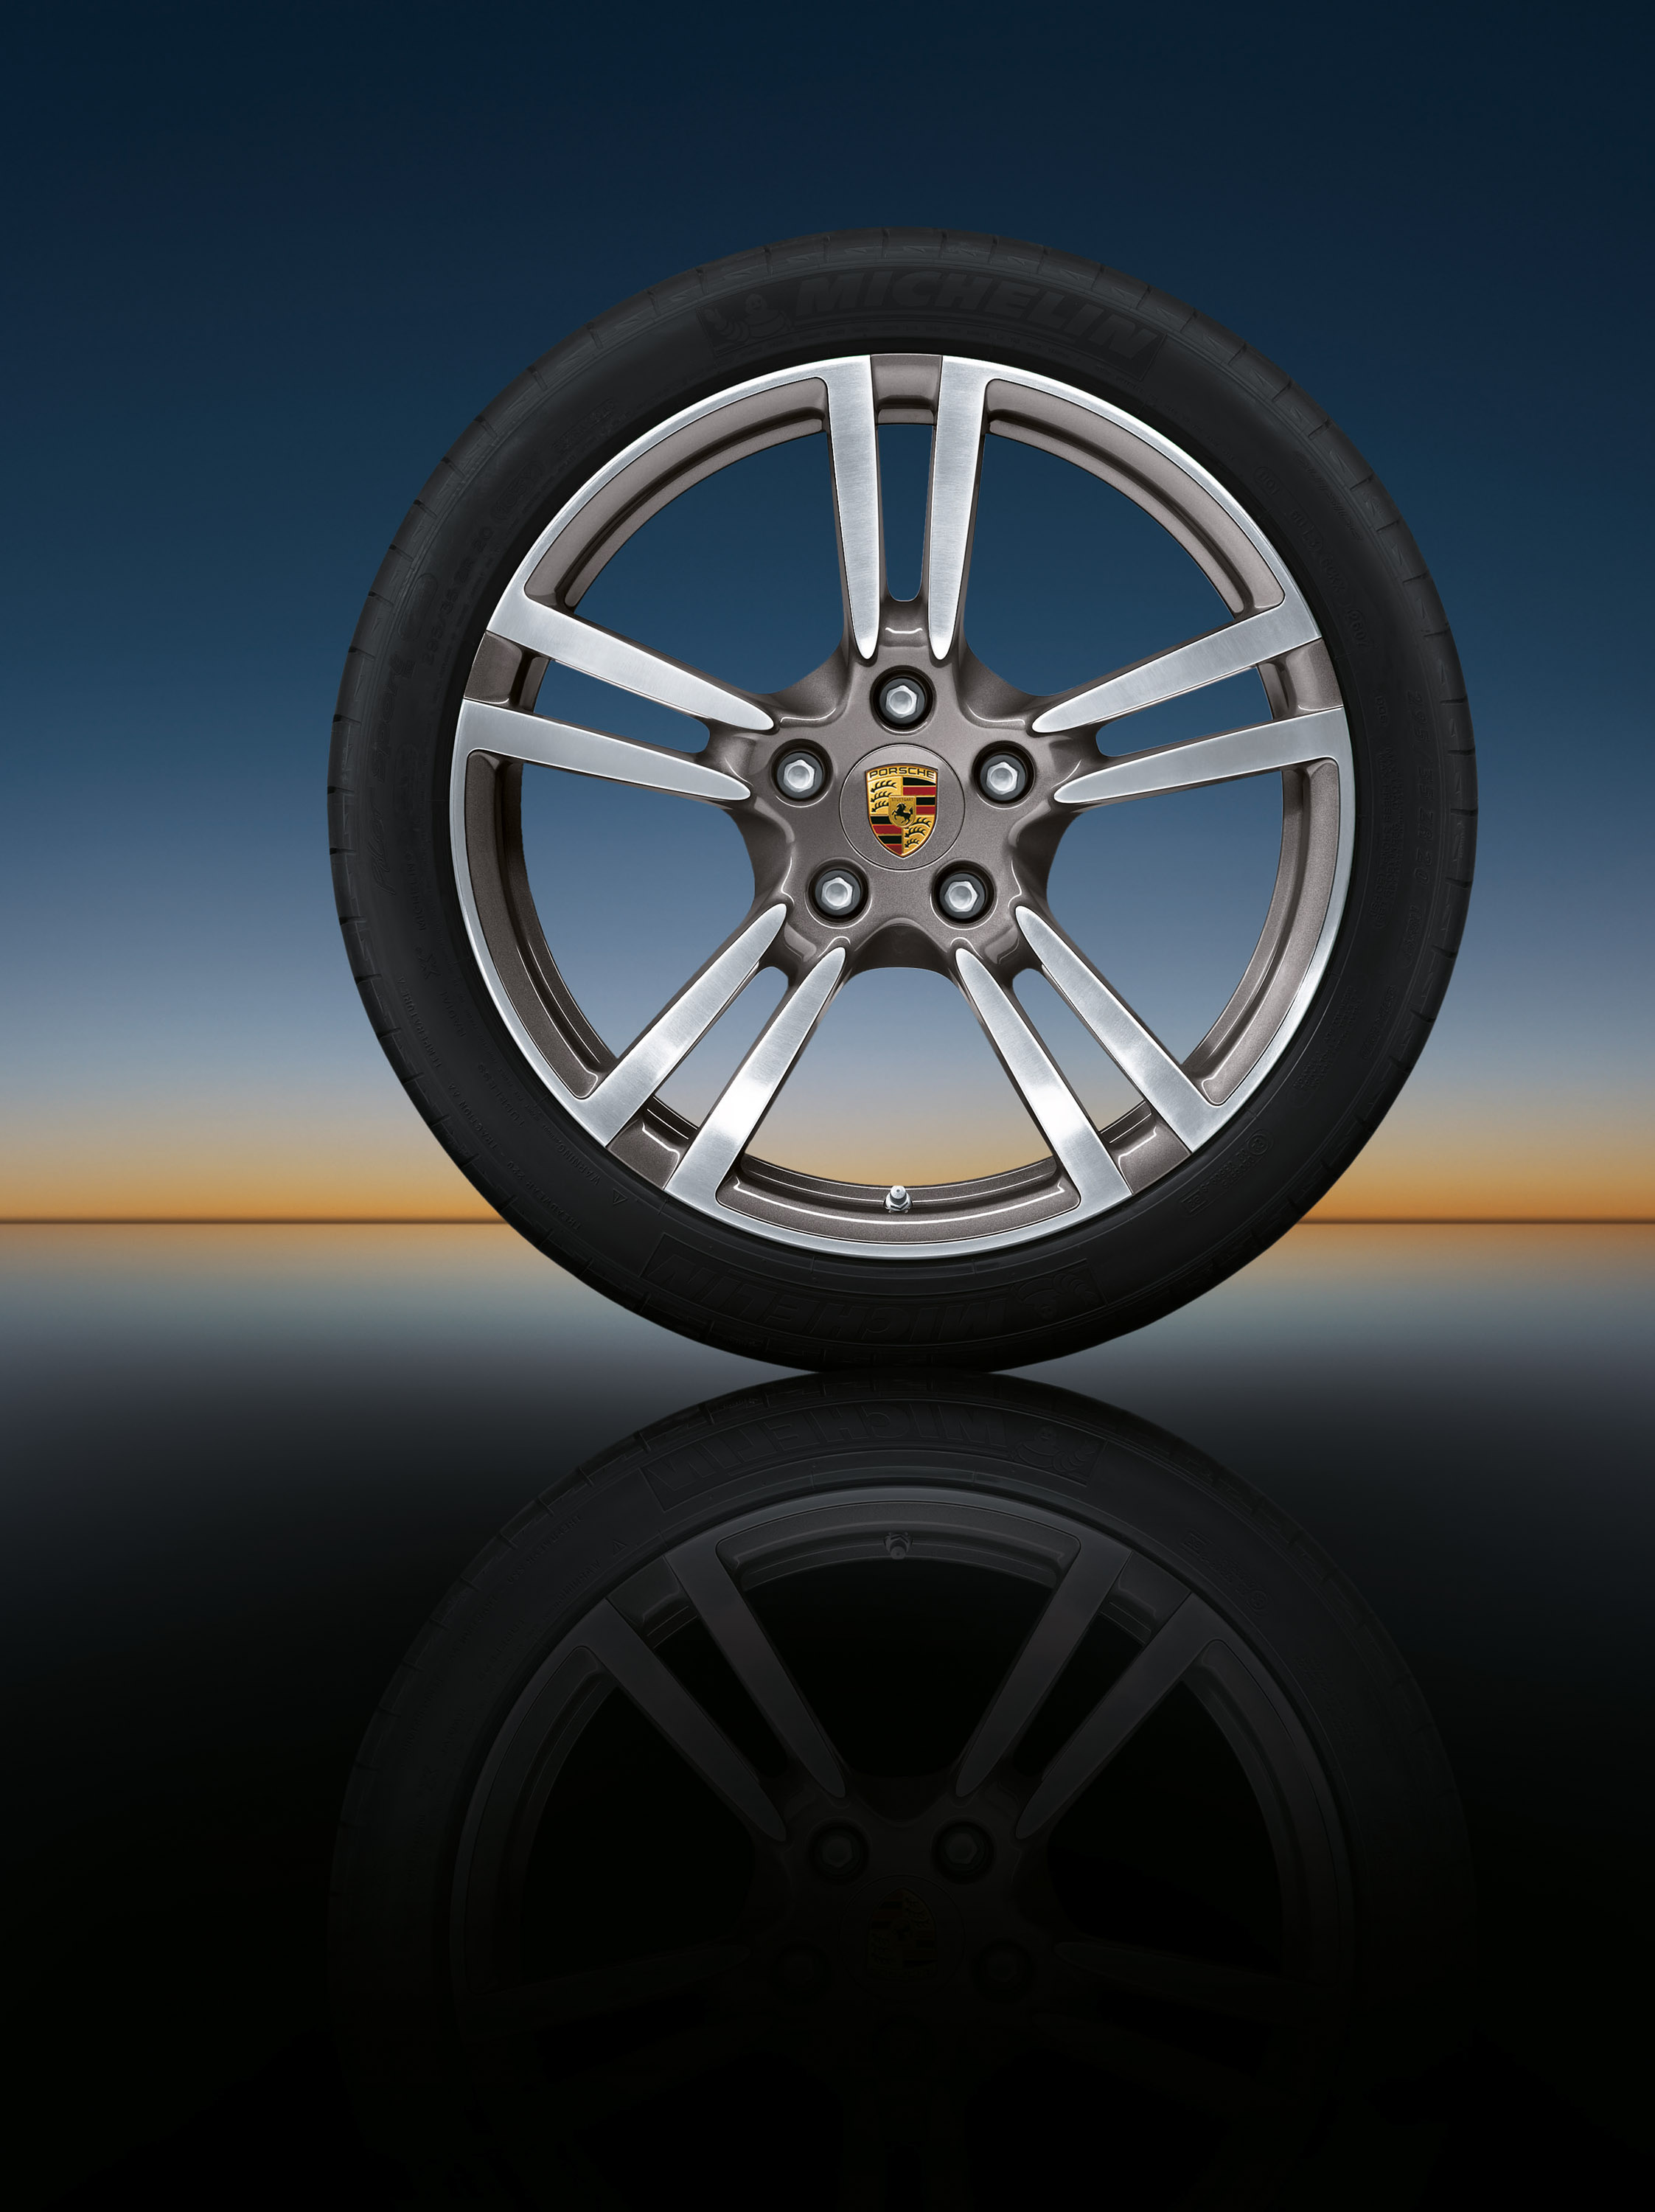 New 20 Inch Forged Wheels For The Luxorious Porsche Panamera